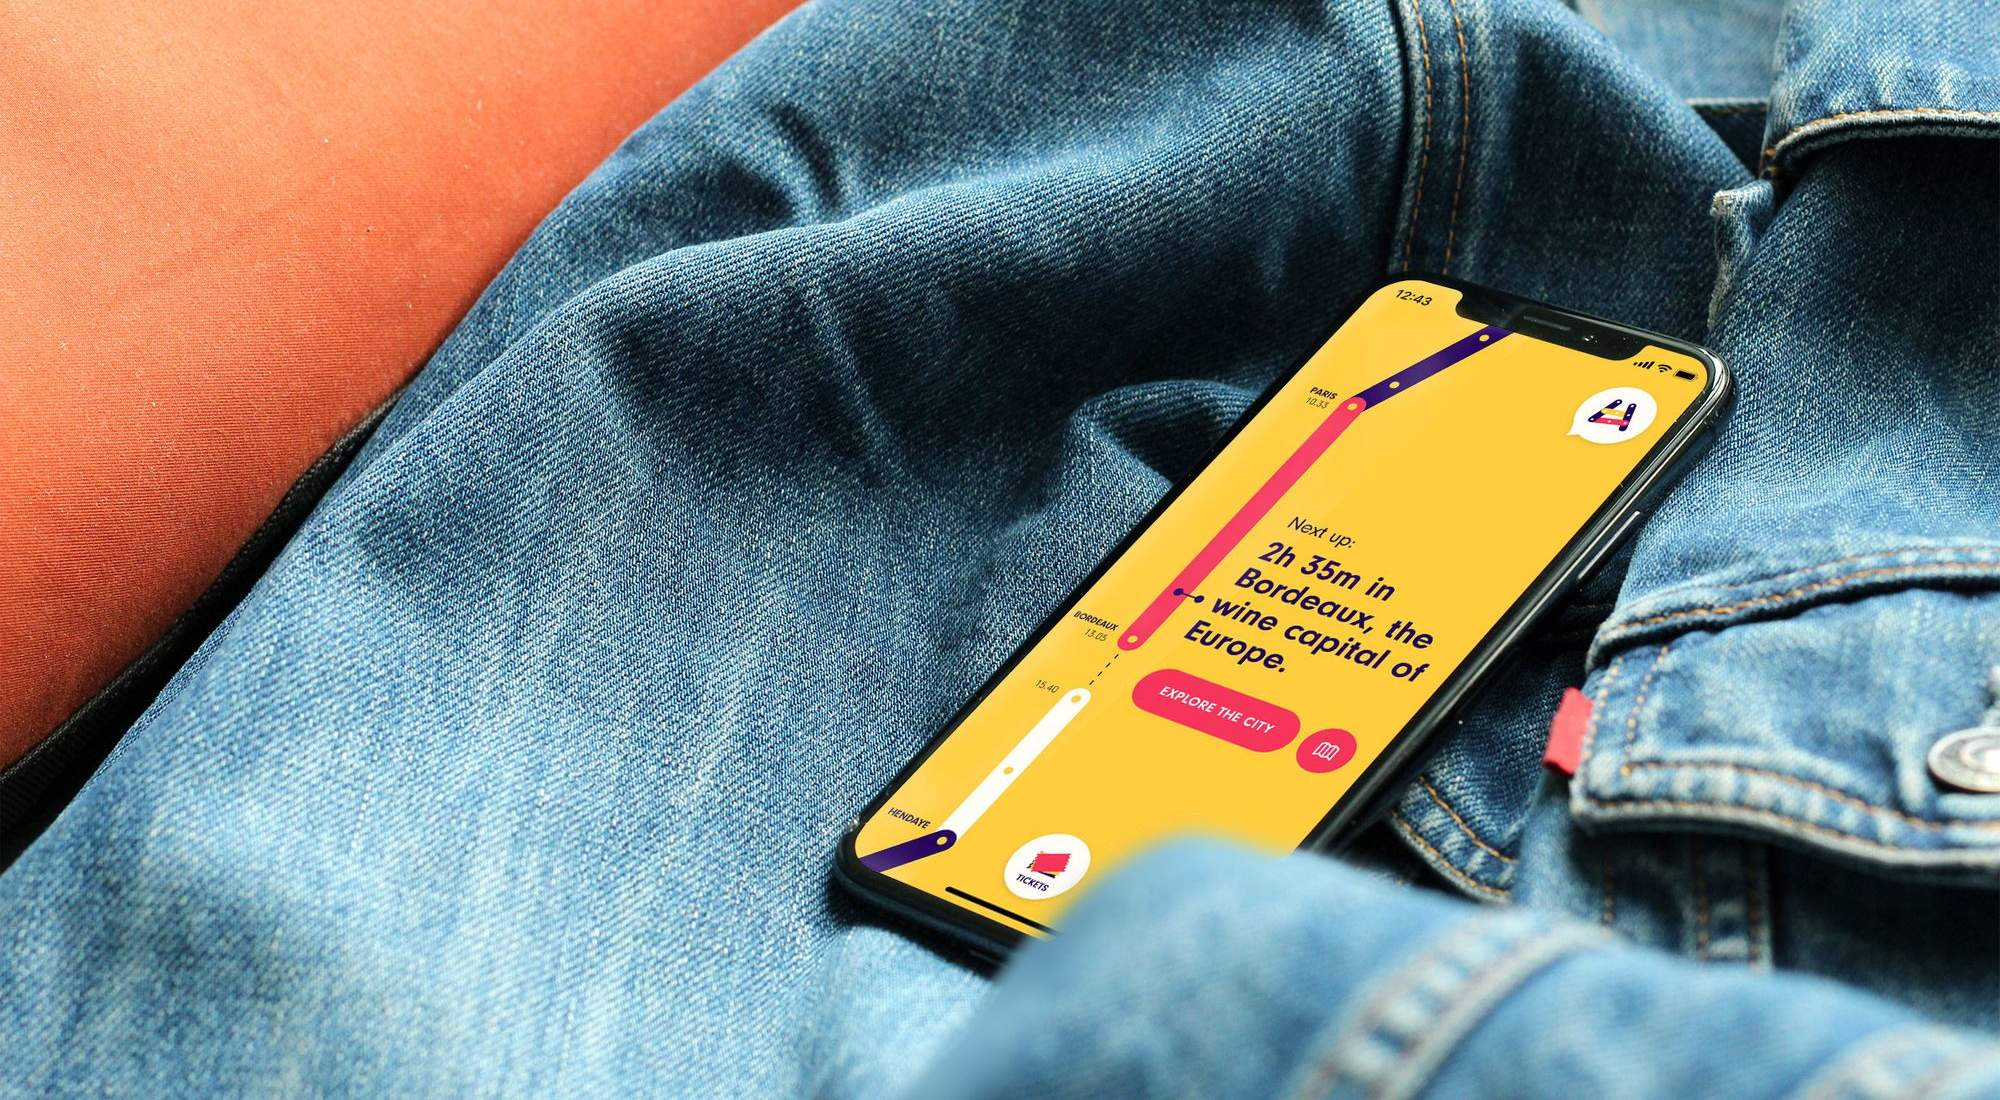 A smartphone laying on a jeans jacket with the All Aboard app open